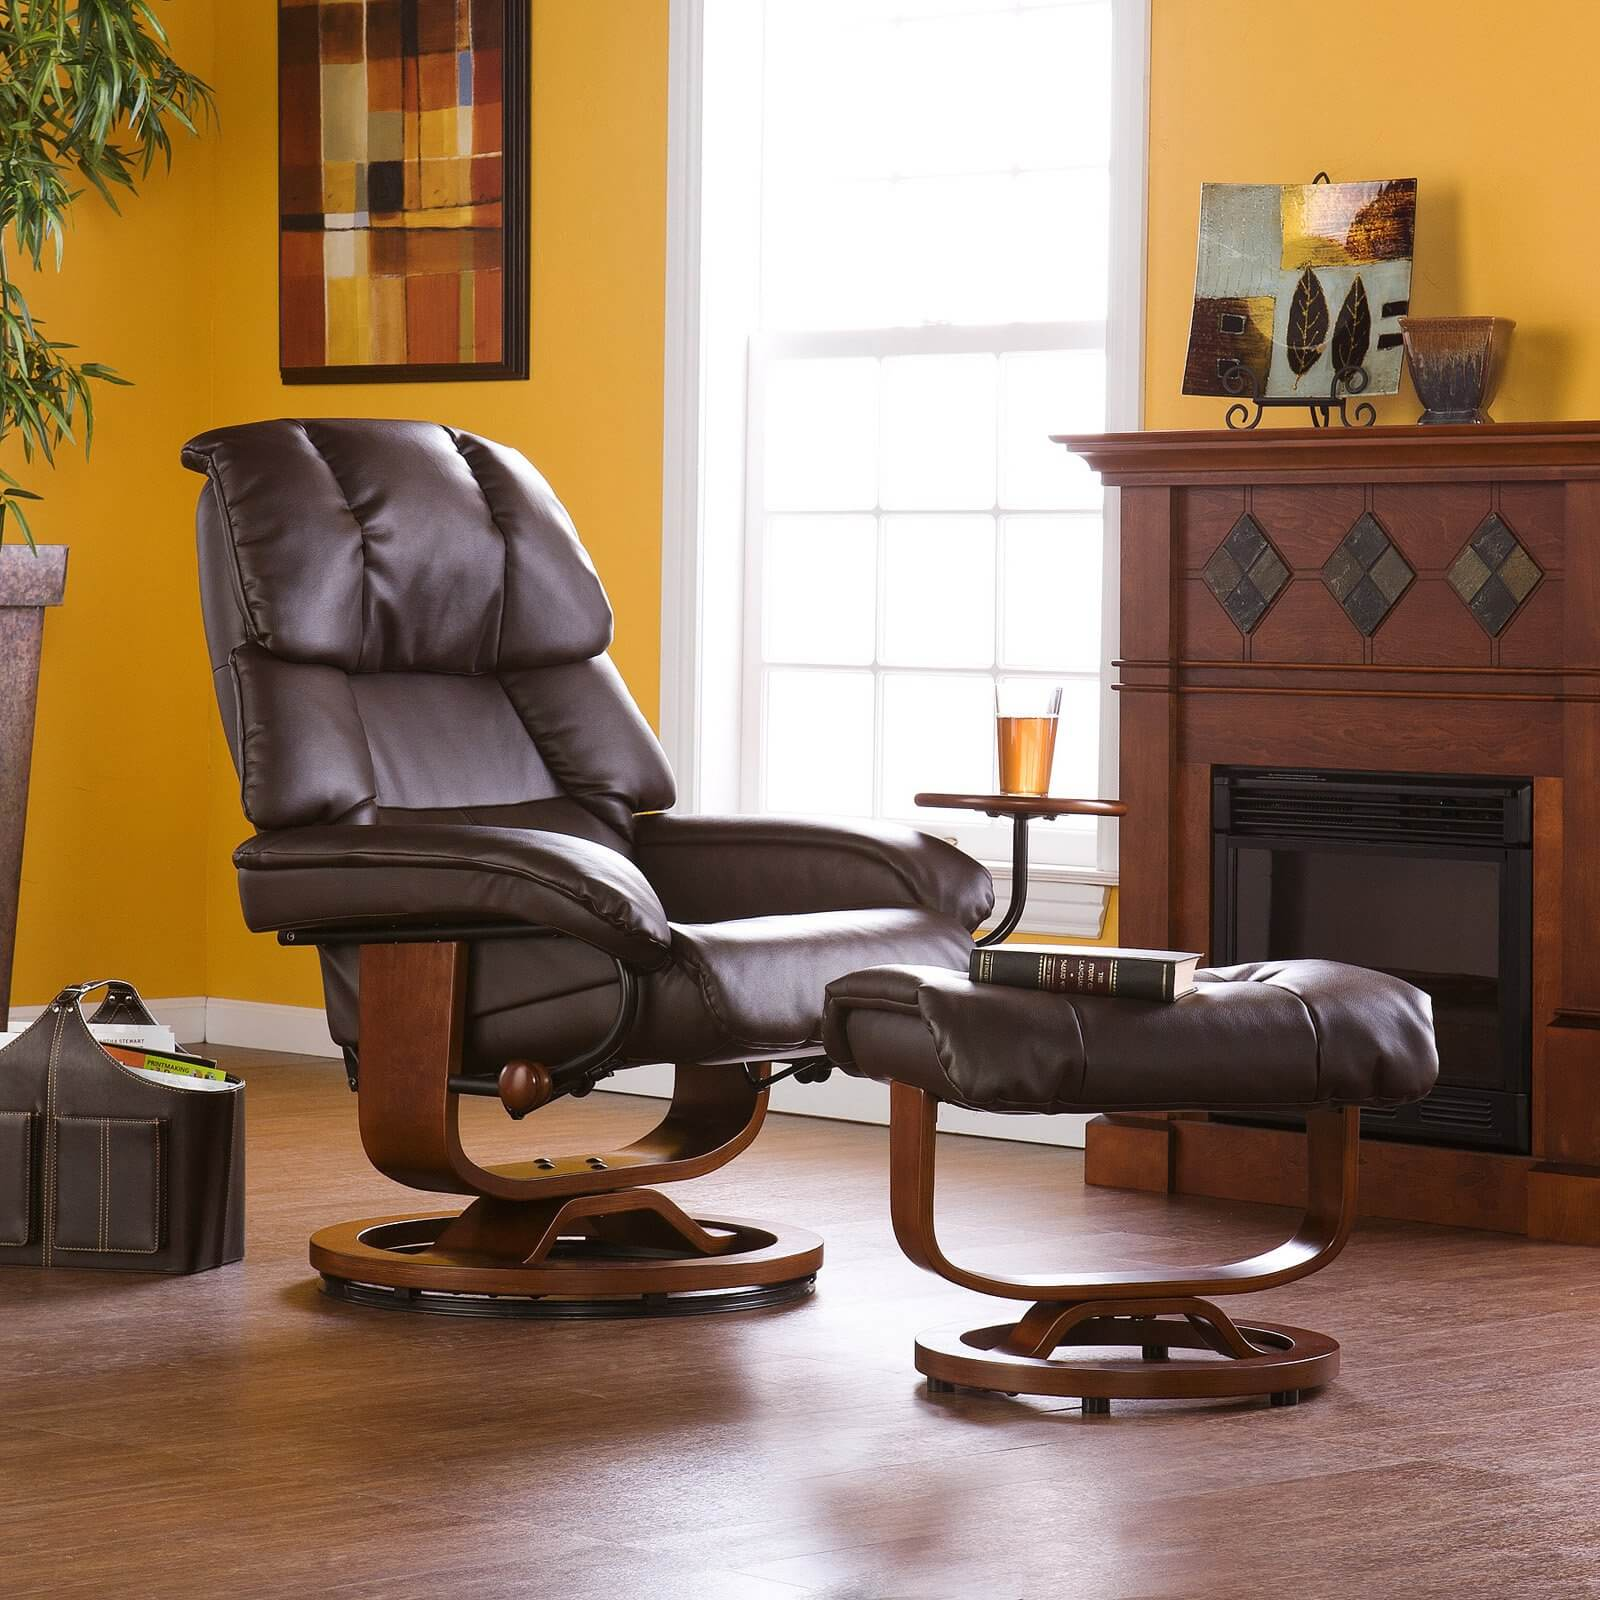 Certain recliner designs replace the built-in foot rest with a full matching ottoman. Our swivel mounted example here features plush leather upholstery over a rich wood frame.